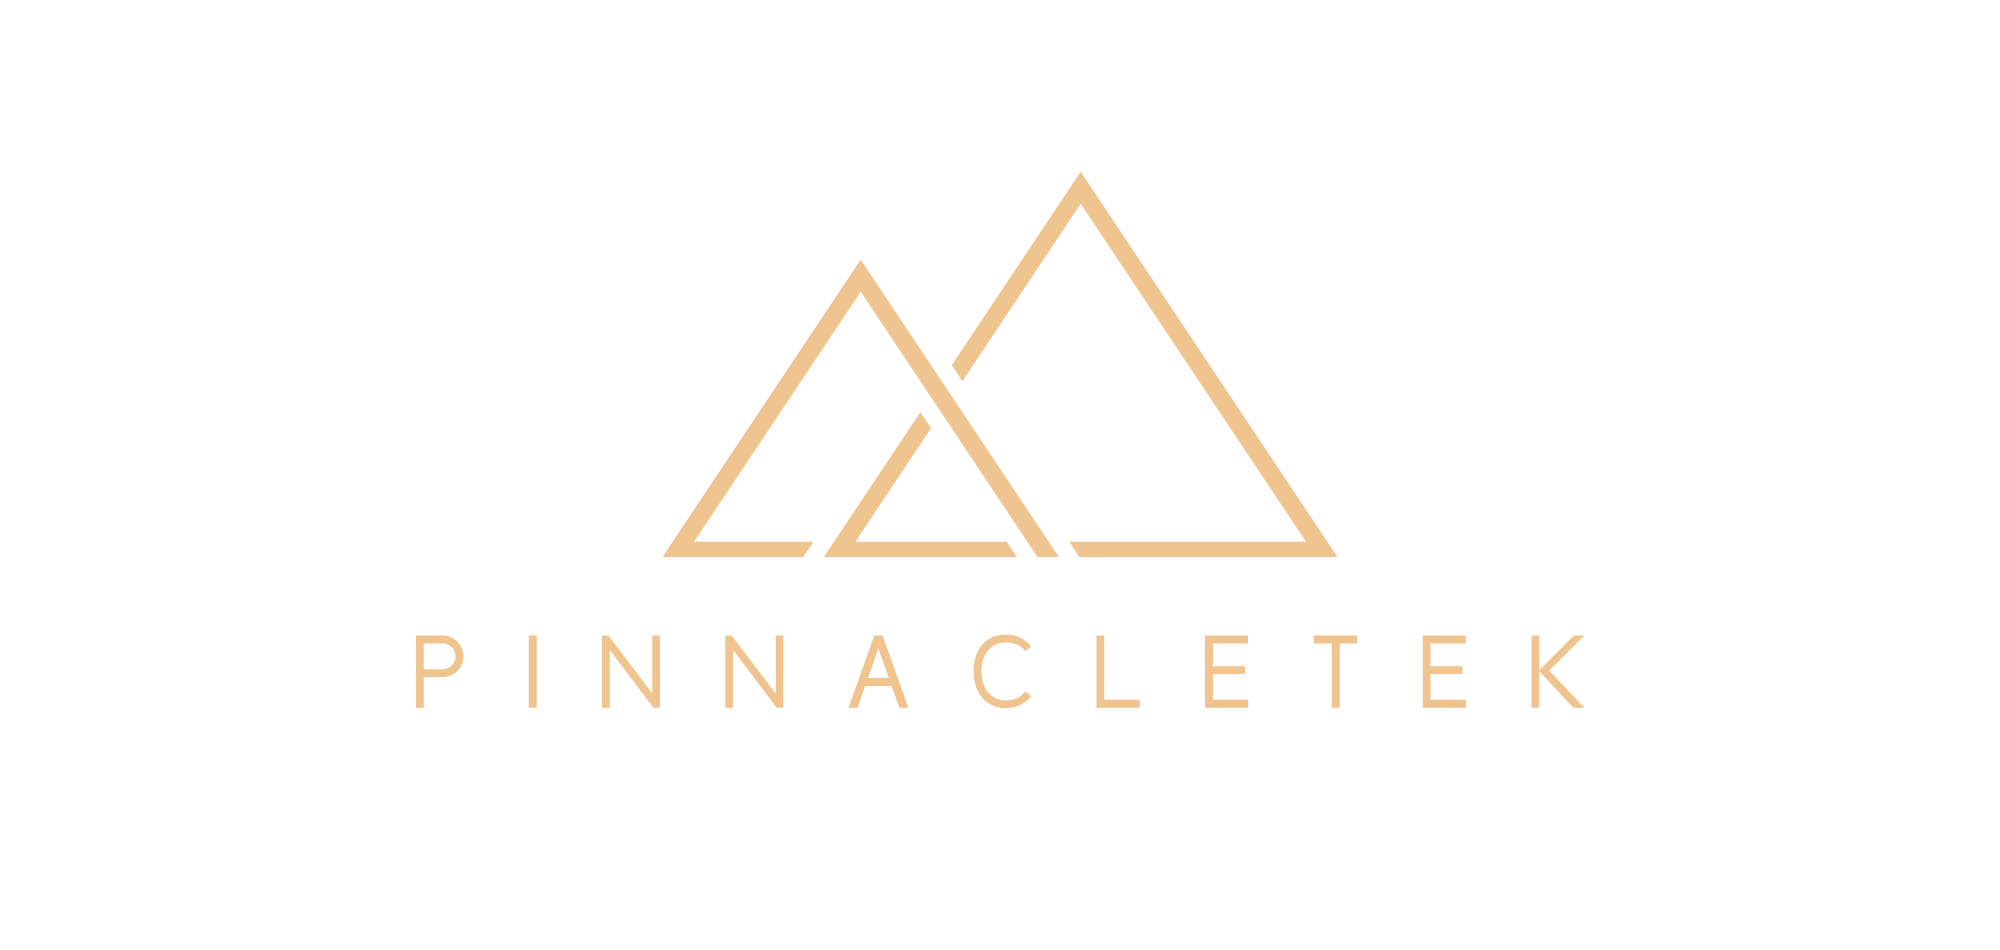 PinnacleTek Ltd.